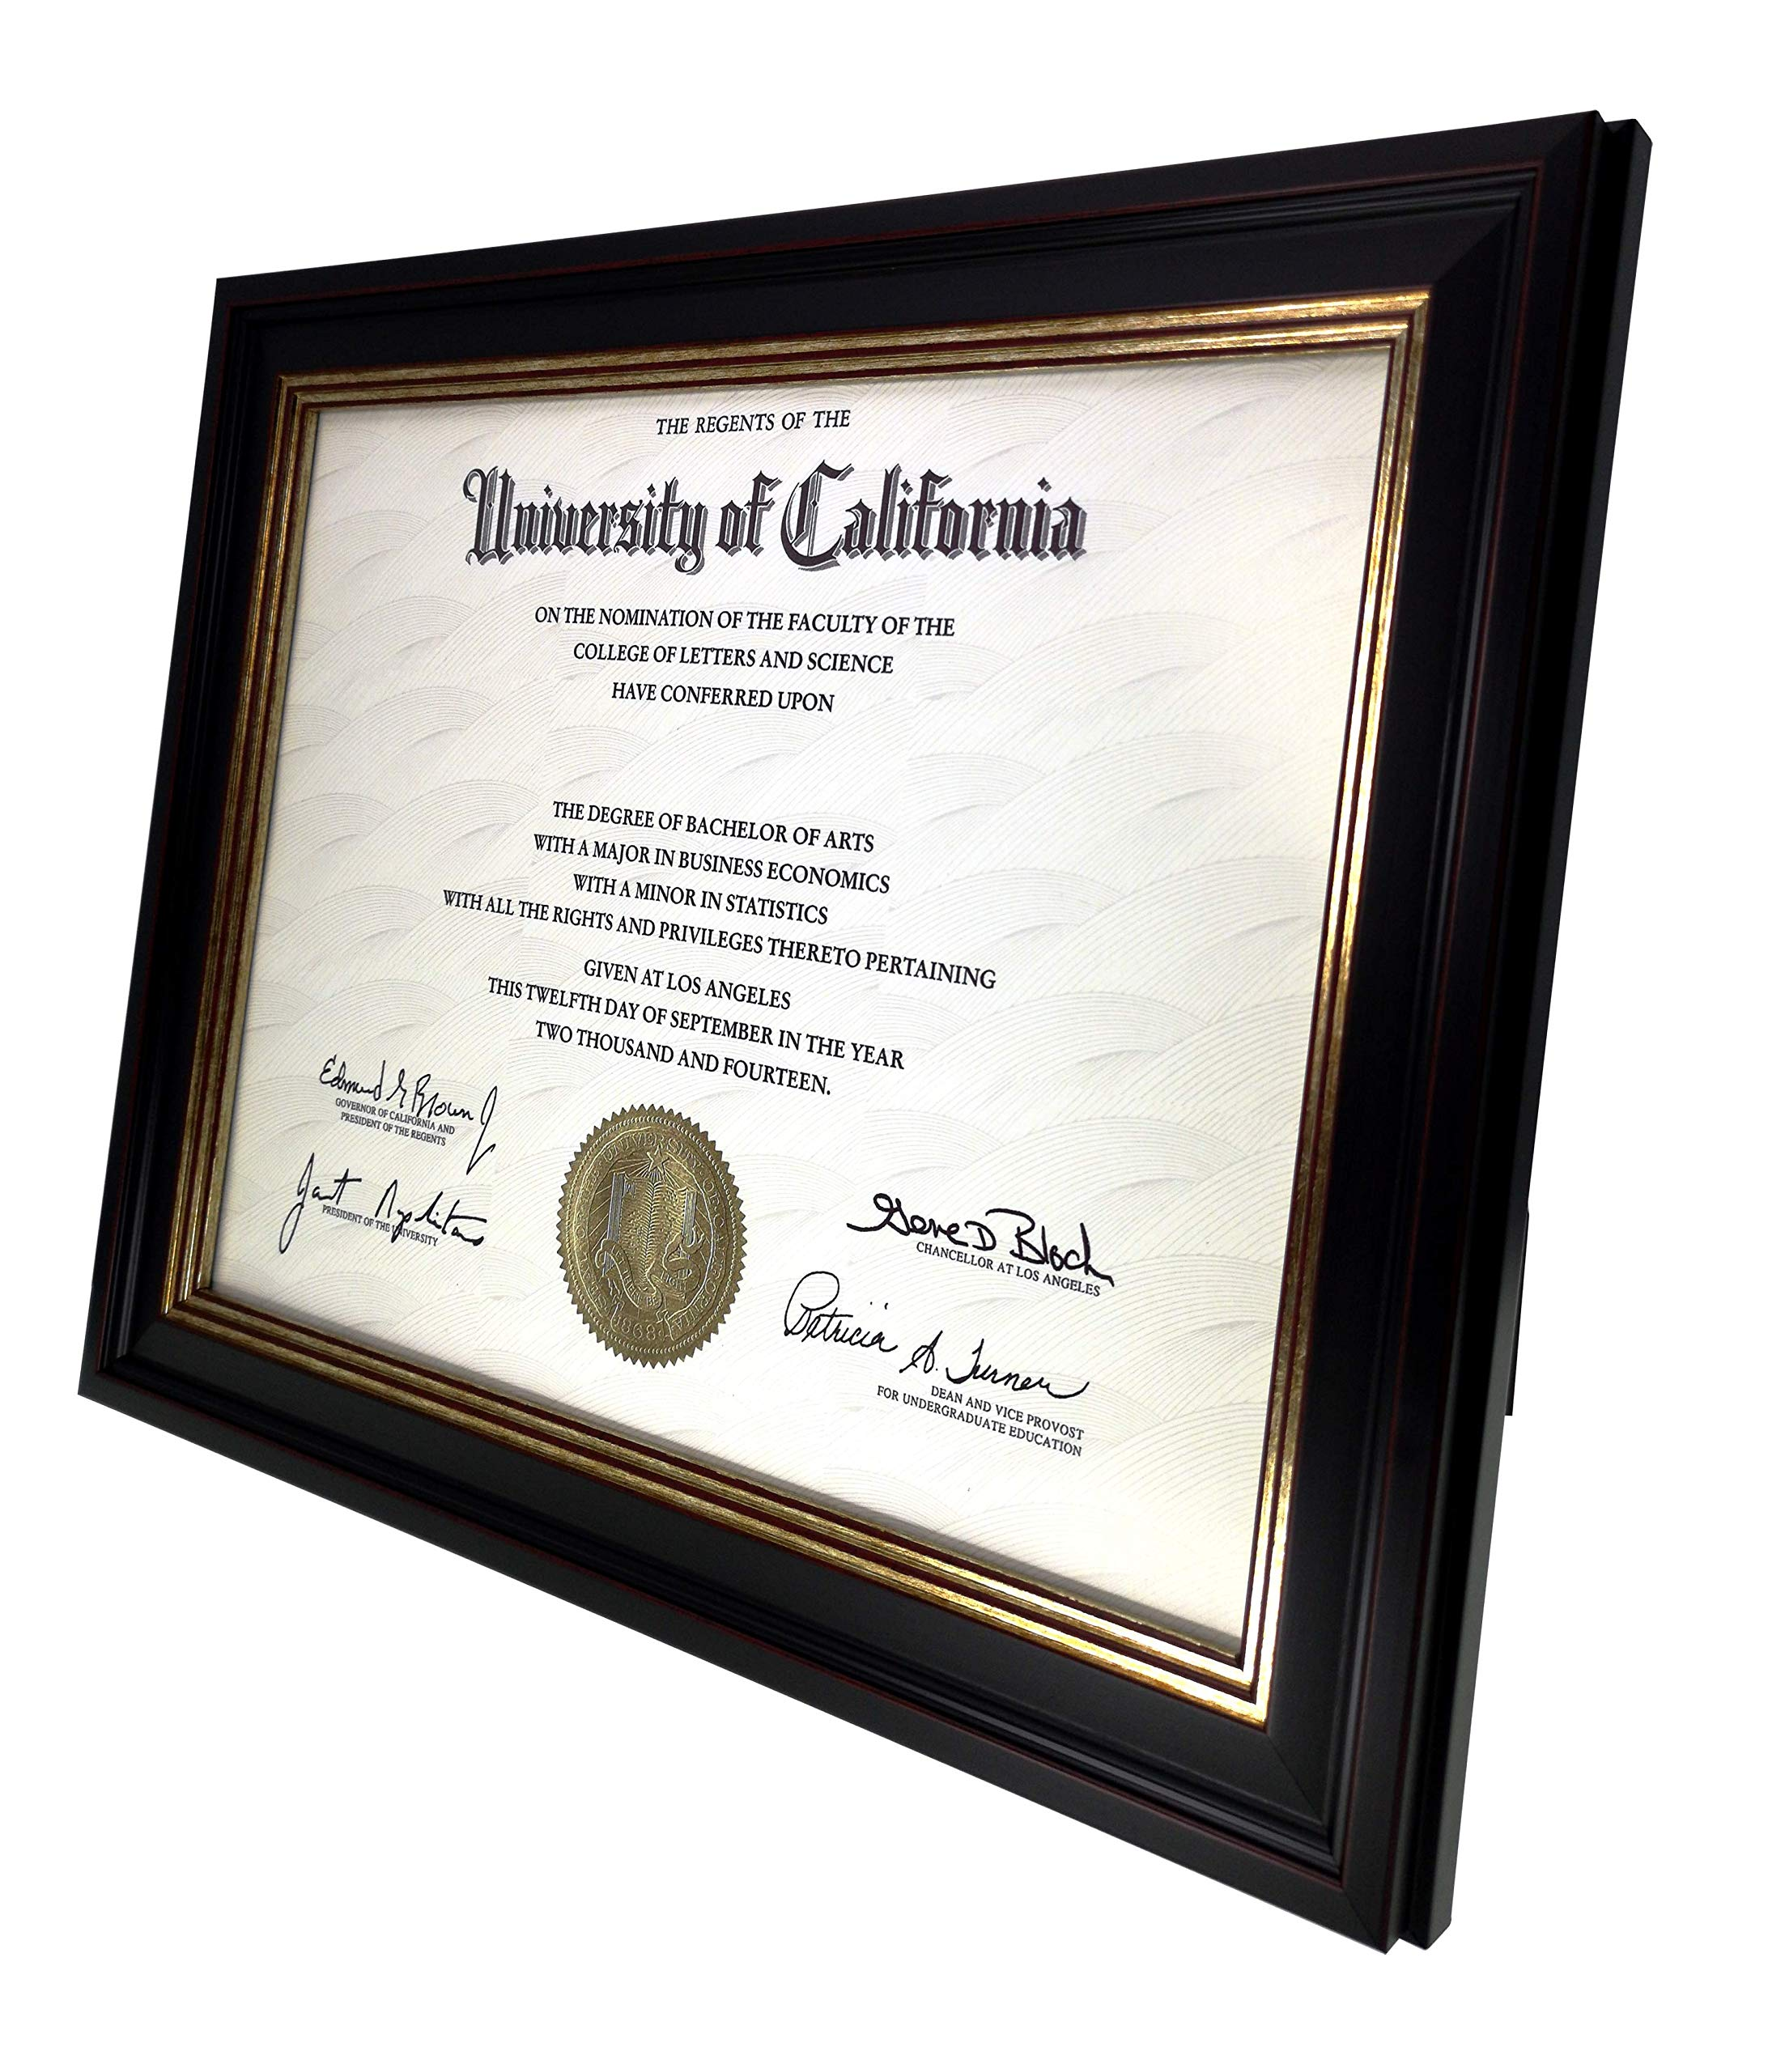 Onuri Inc - Luxurious Document Frame (2-Pack) - Classic 8.5x11 Picture Frame for Diploma Documents and Certificates by Onuri Inc. (Image #3)